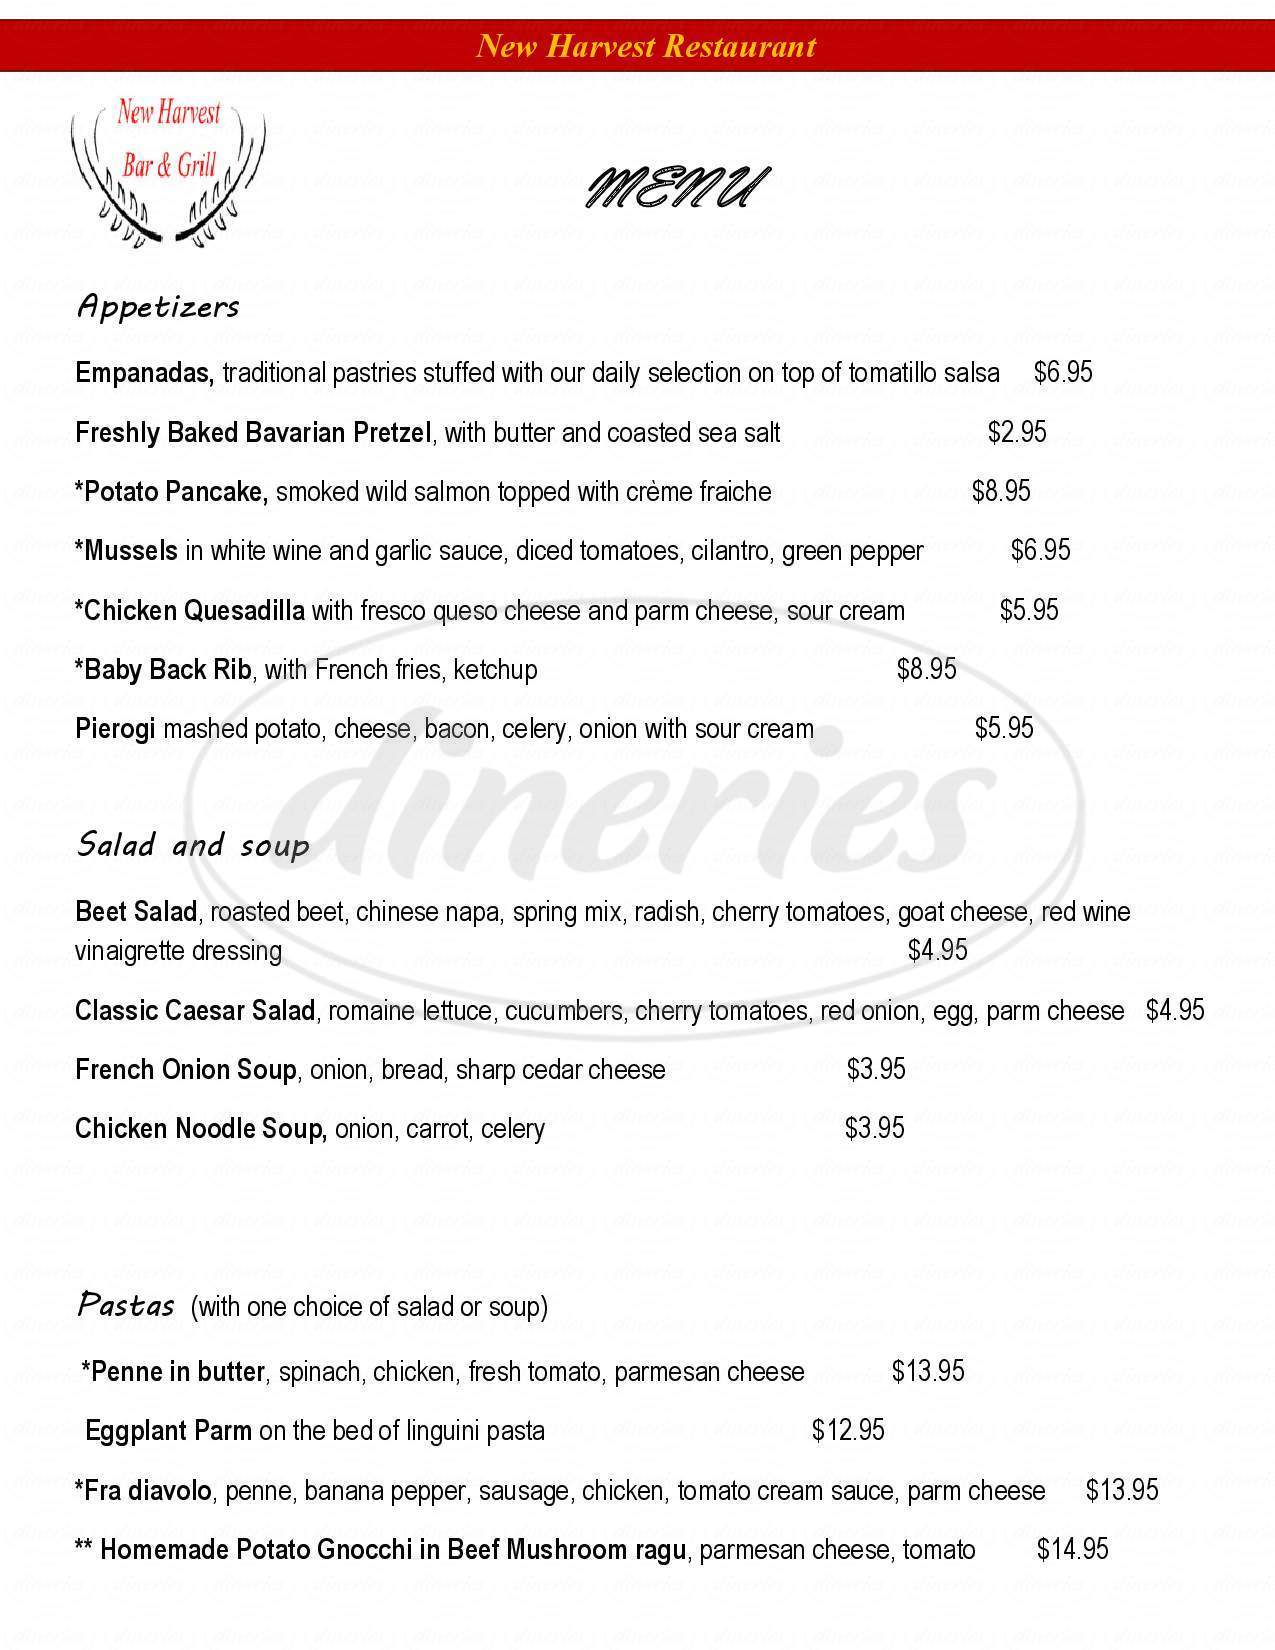 menu for New Harvest Restaurant